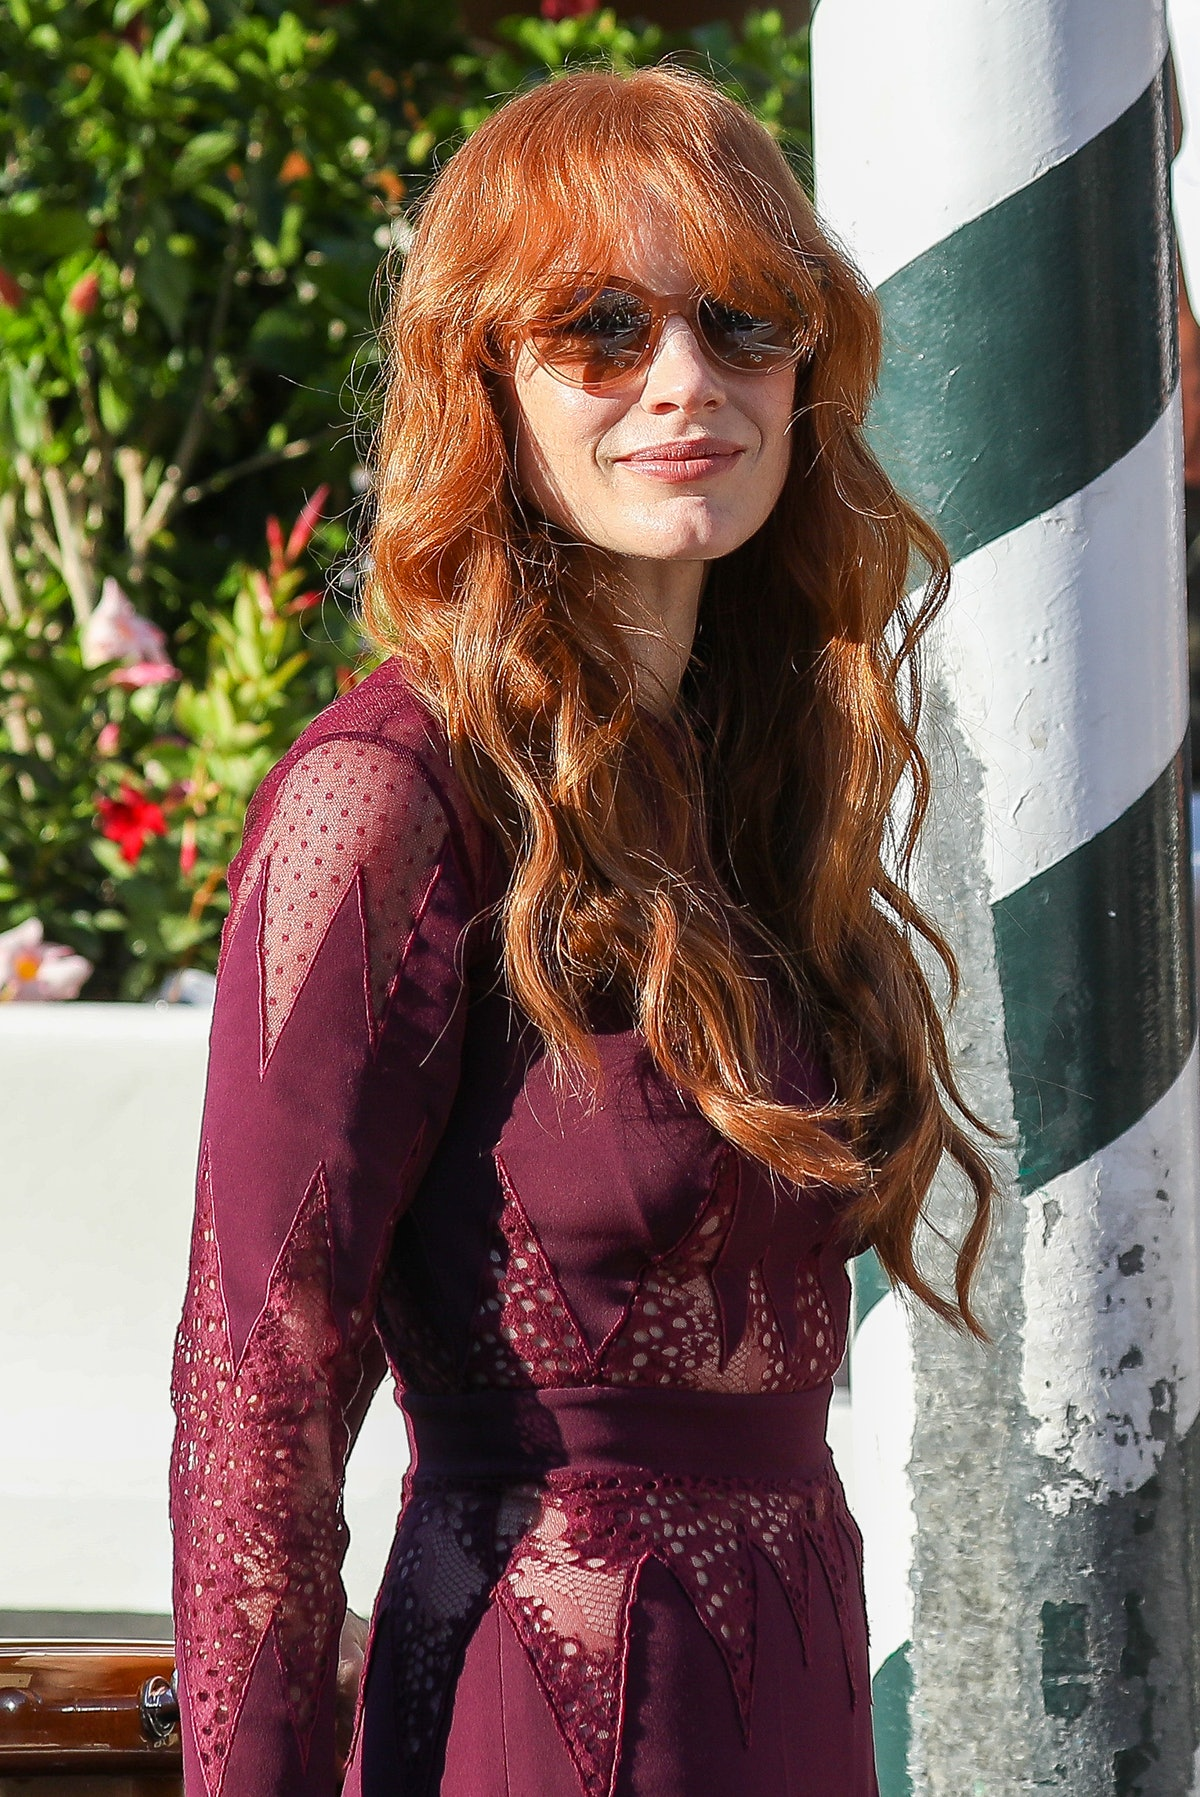 VENICE, ITALY - SEPTEMBER 05: Actress Jessica Chastain arrives at the 78th Venice International Film...